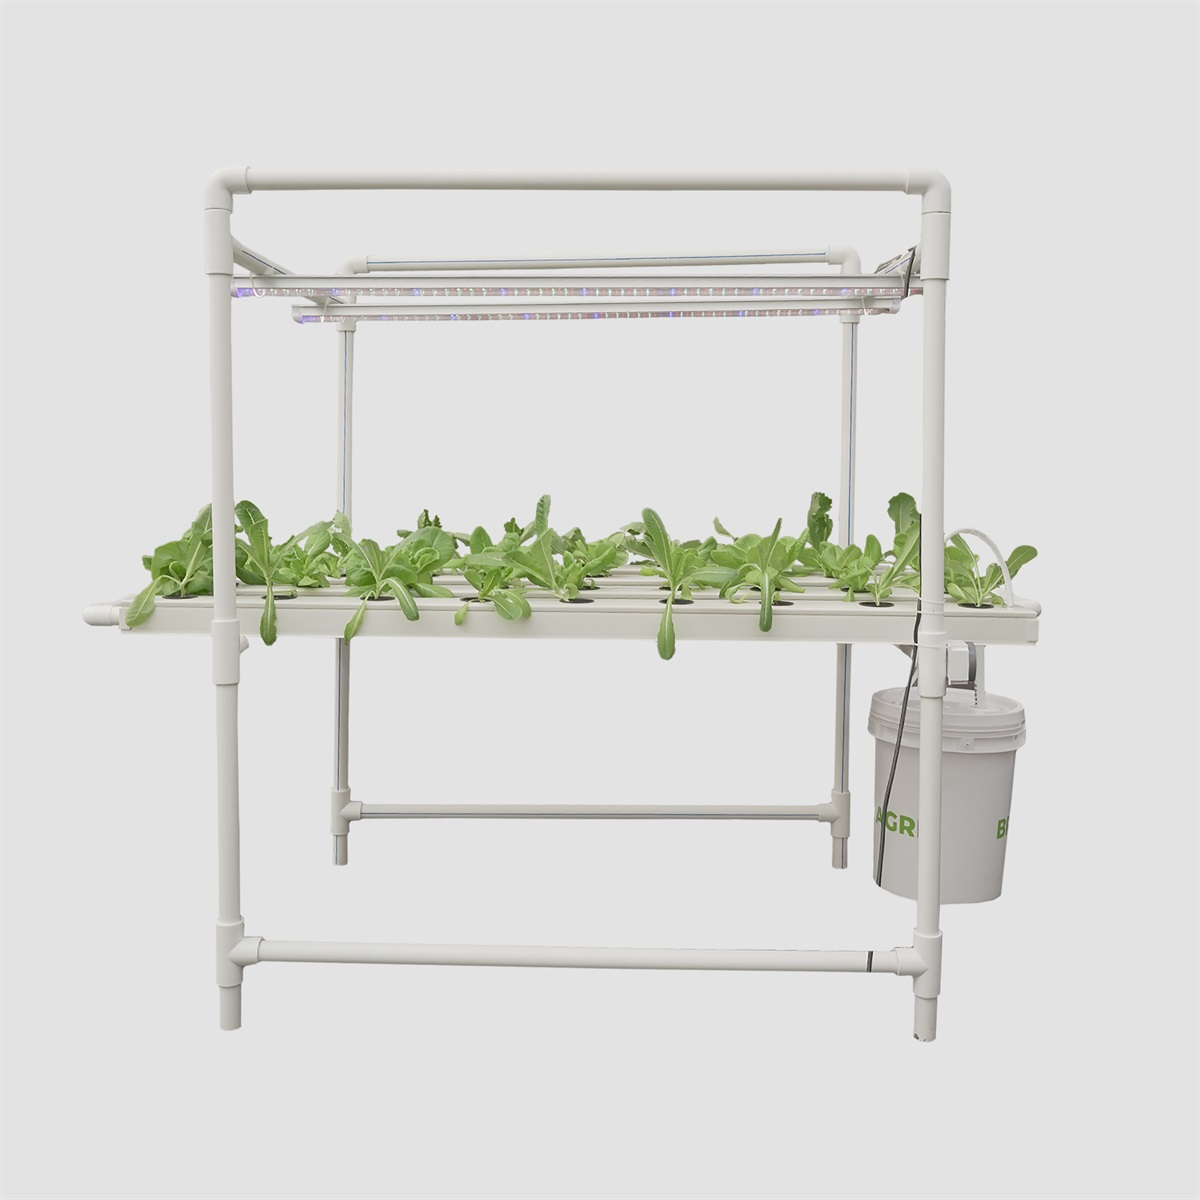 Agrimiracle UNO Hydroponics Grower's Kit (36 Planter NFT)